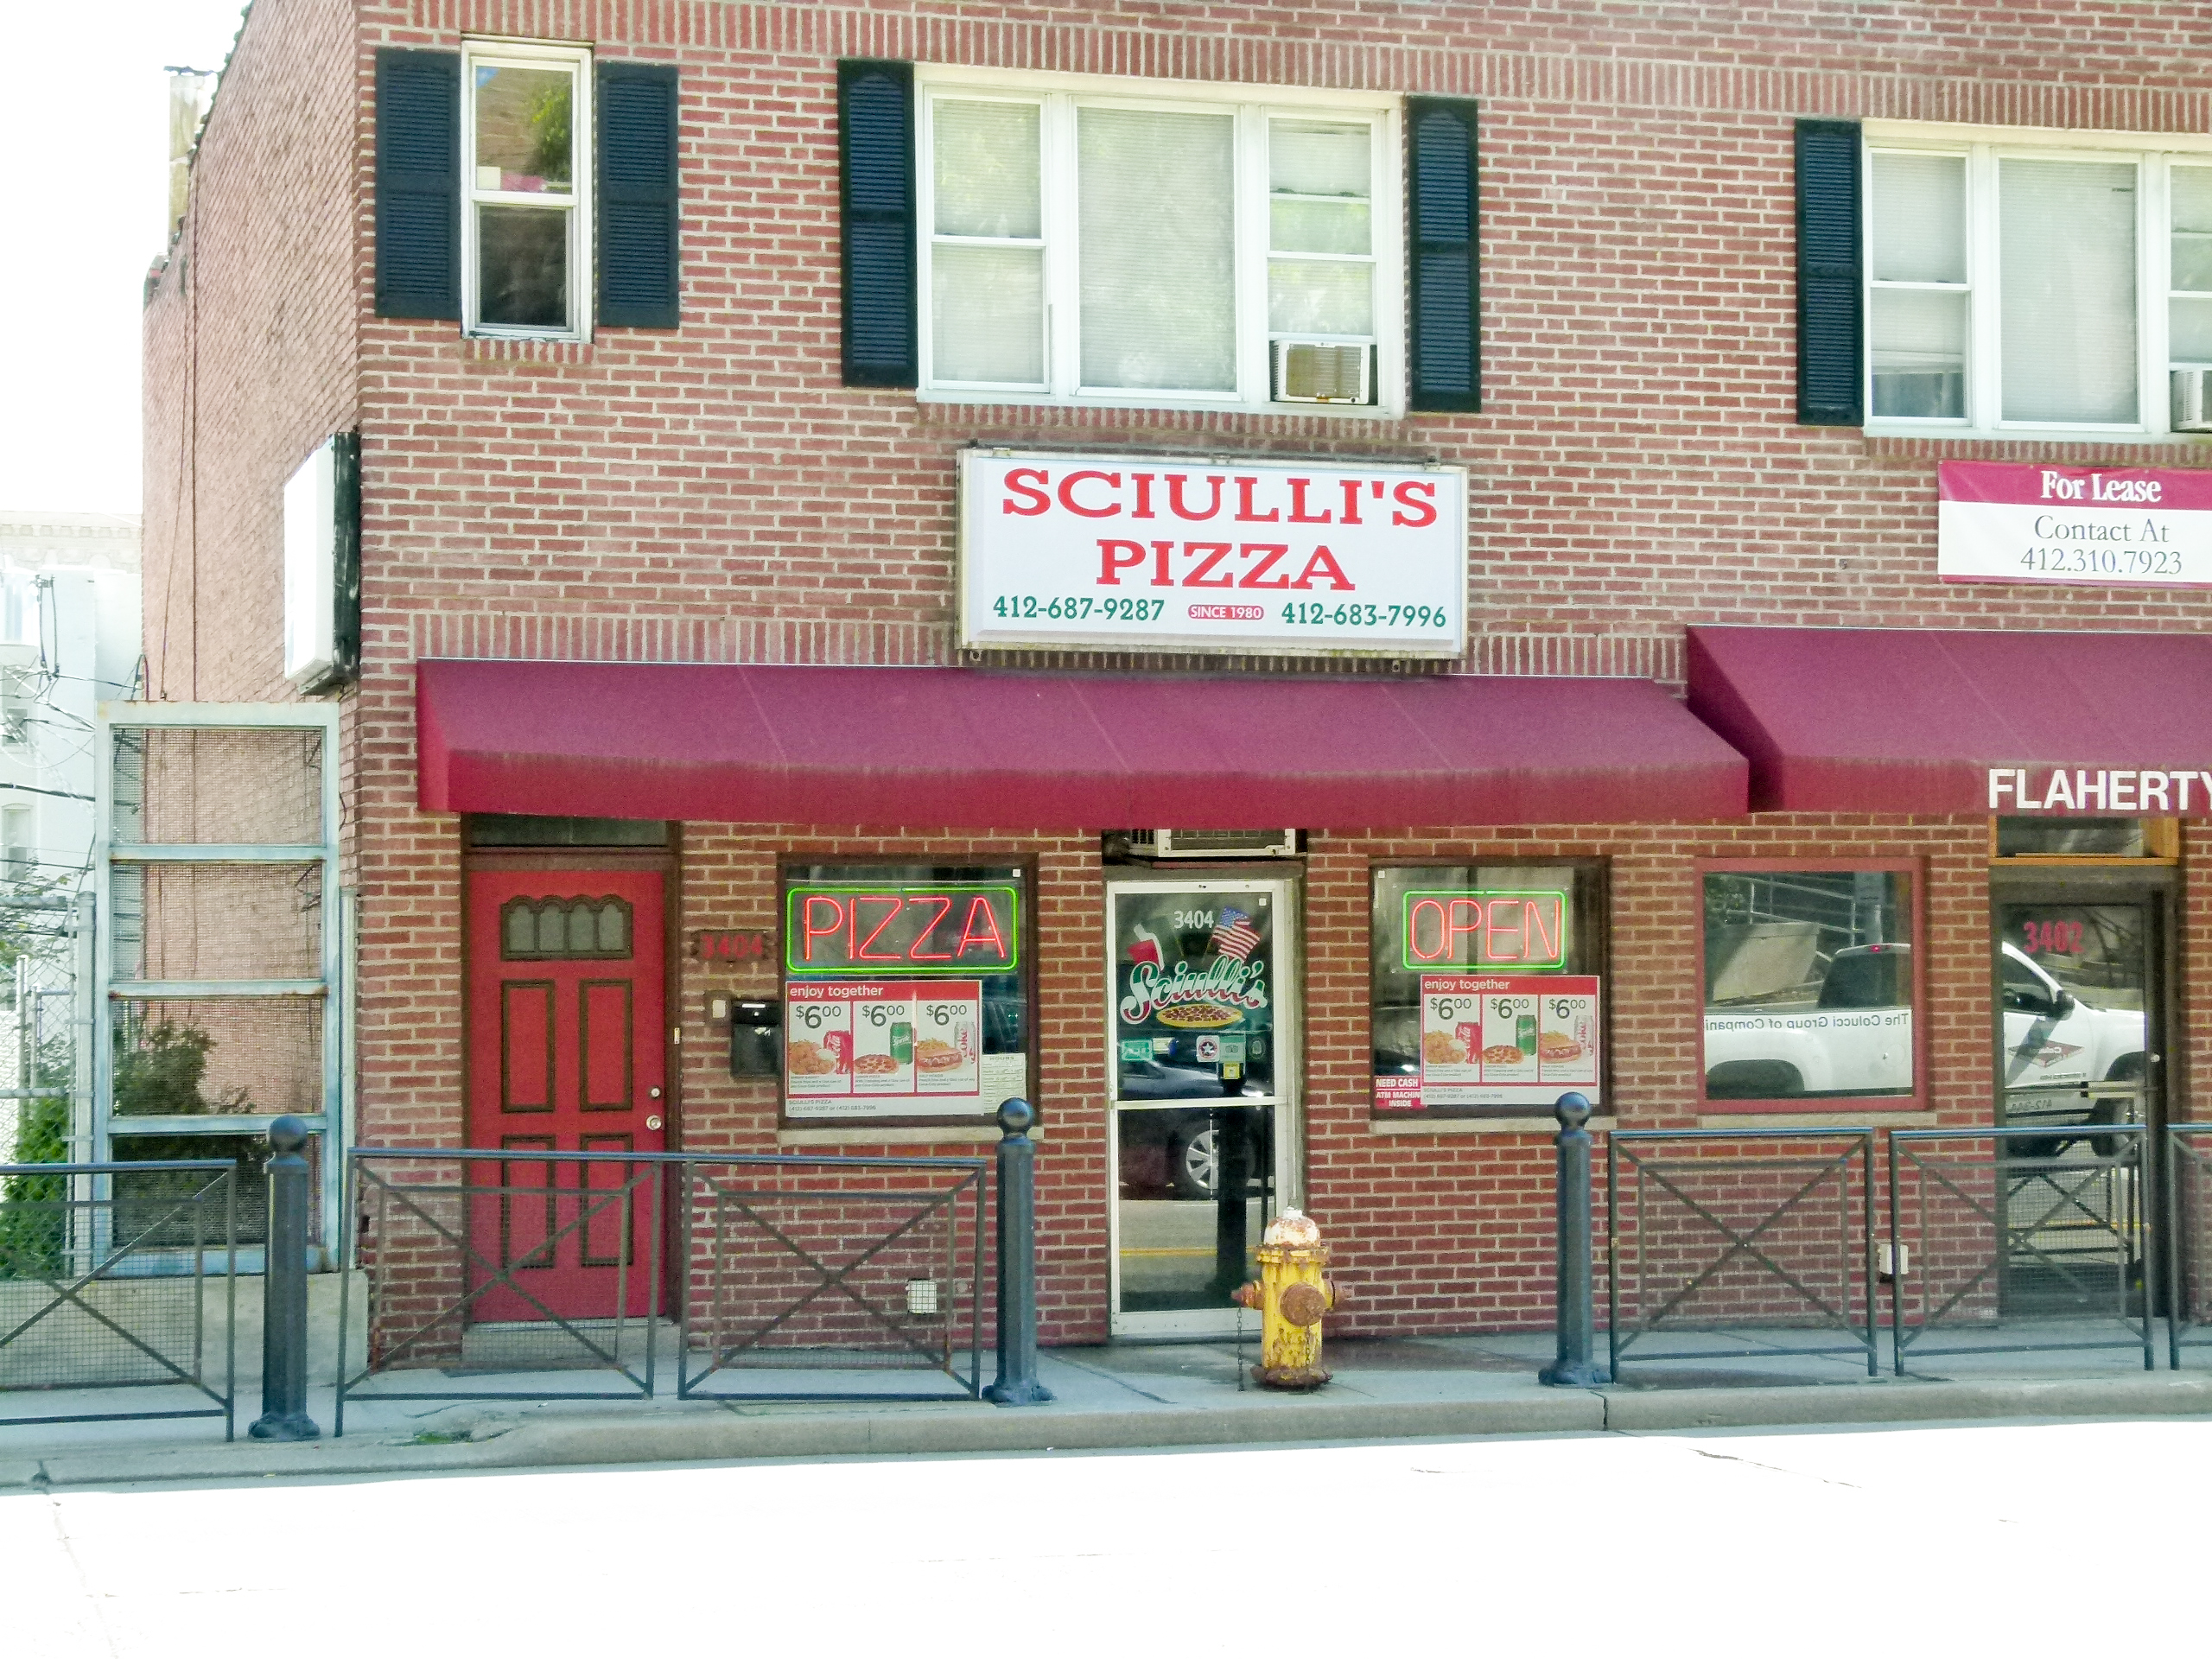 Sciulli's Pizza on Fifth avenue near Halket street.